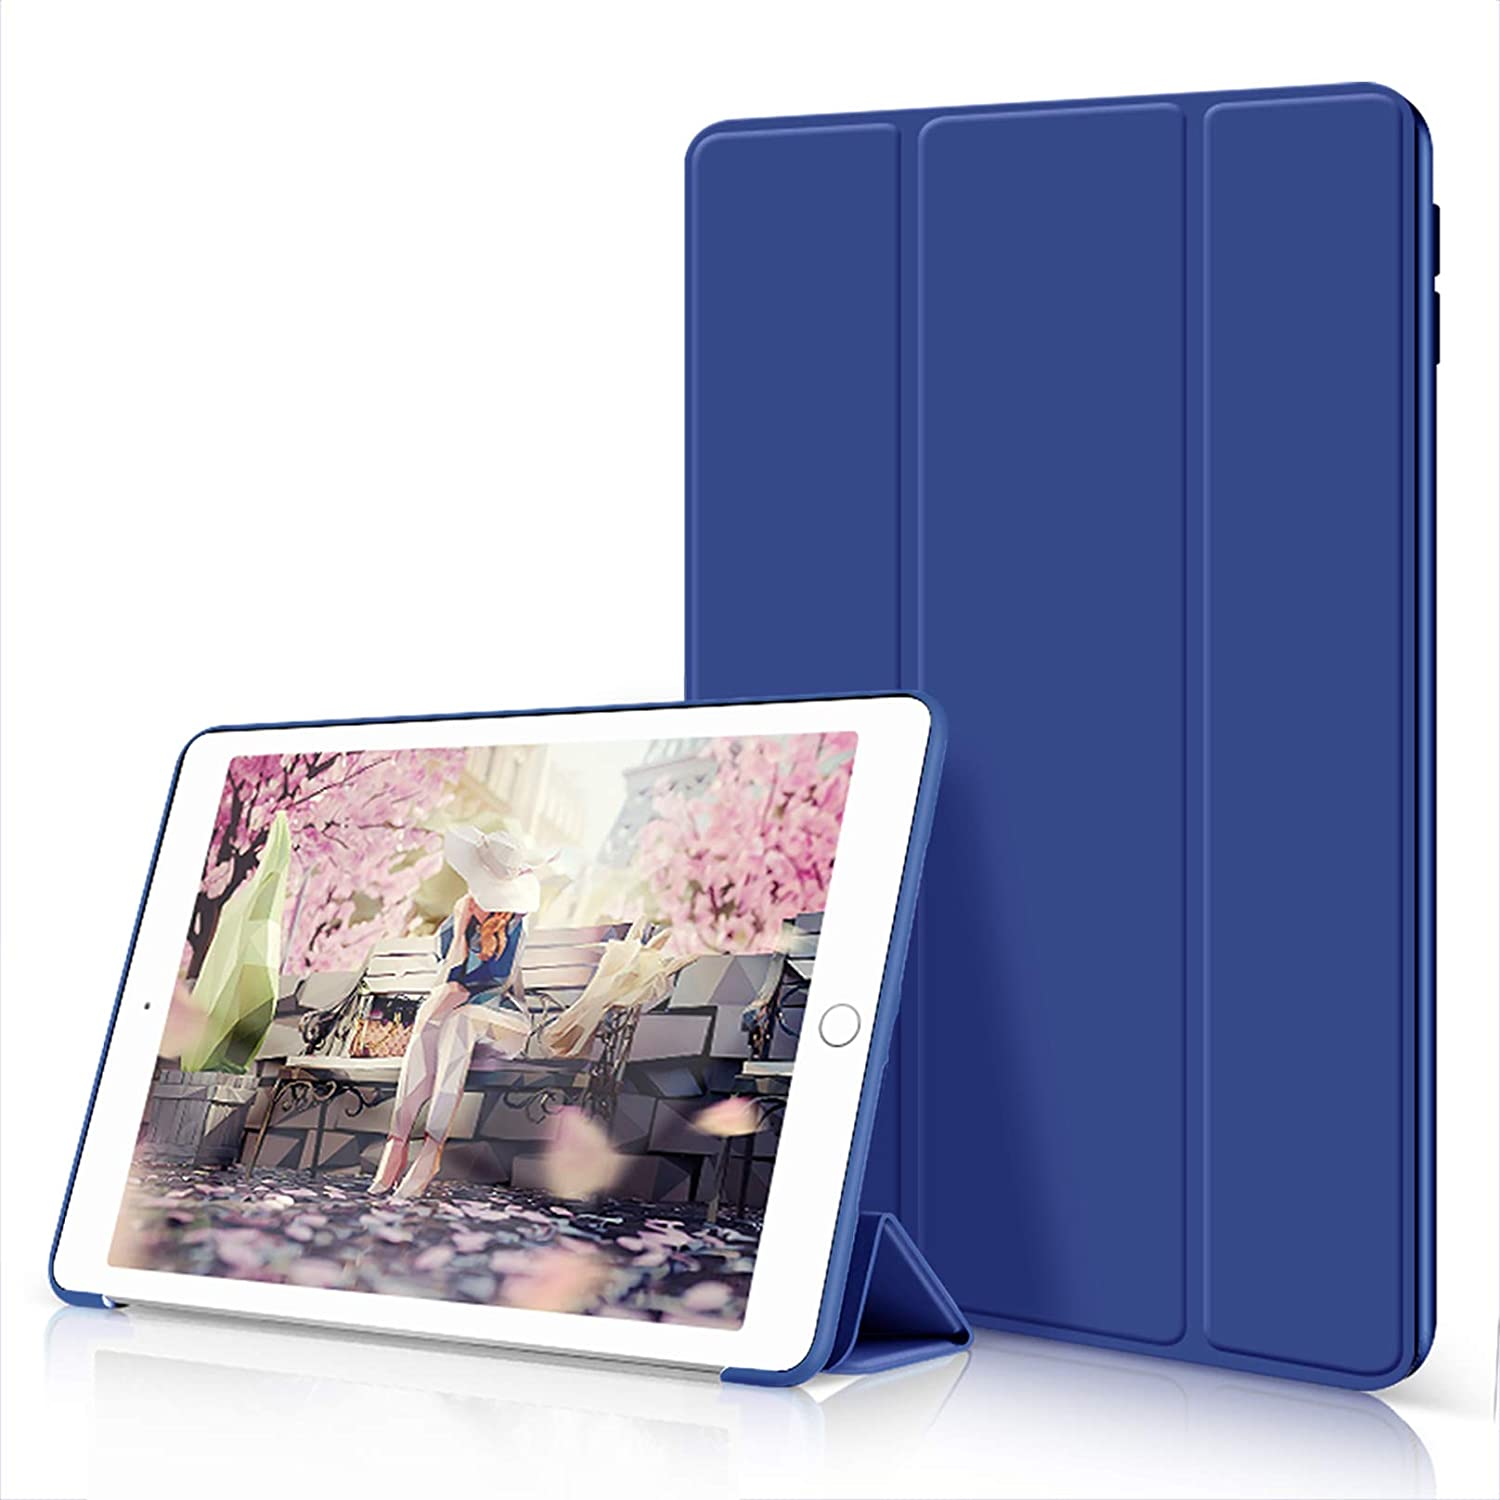 Aoub Case for iPad 6th/5th Generation 2018/2017 9.7 inch, Trifold Stand Ultra Leightweight Soft TPU Smart Cover with Auto Wake/Sleep for Apple iPad Model A1893/A1954, A1822/A1823, Navy